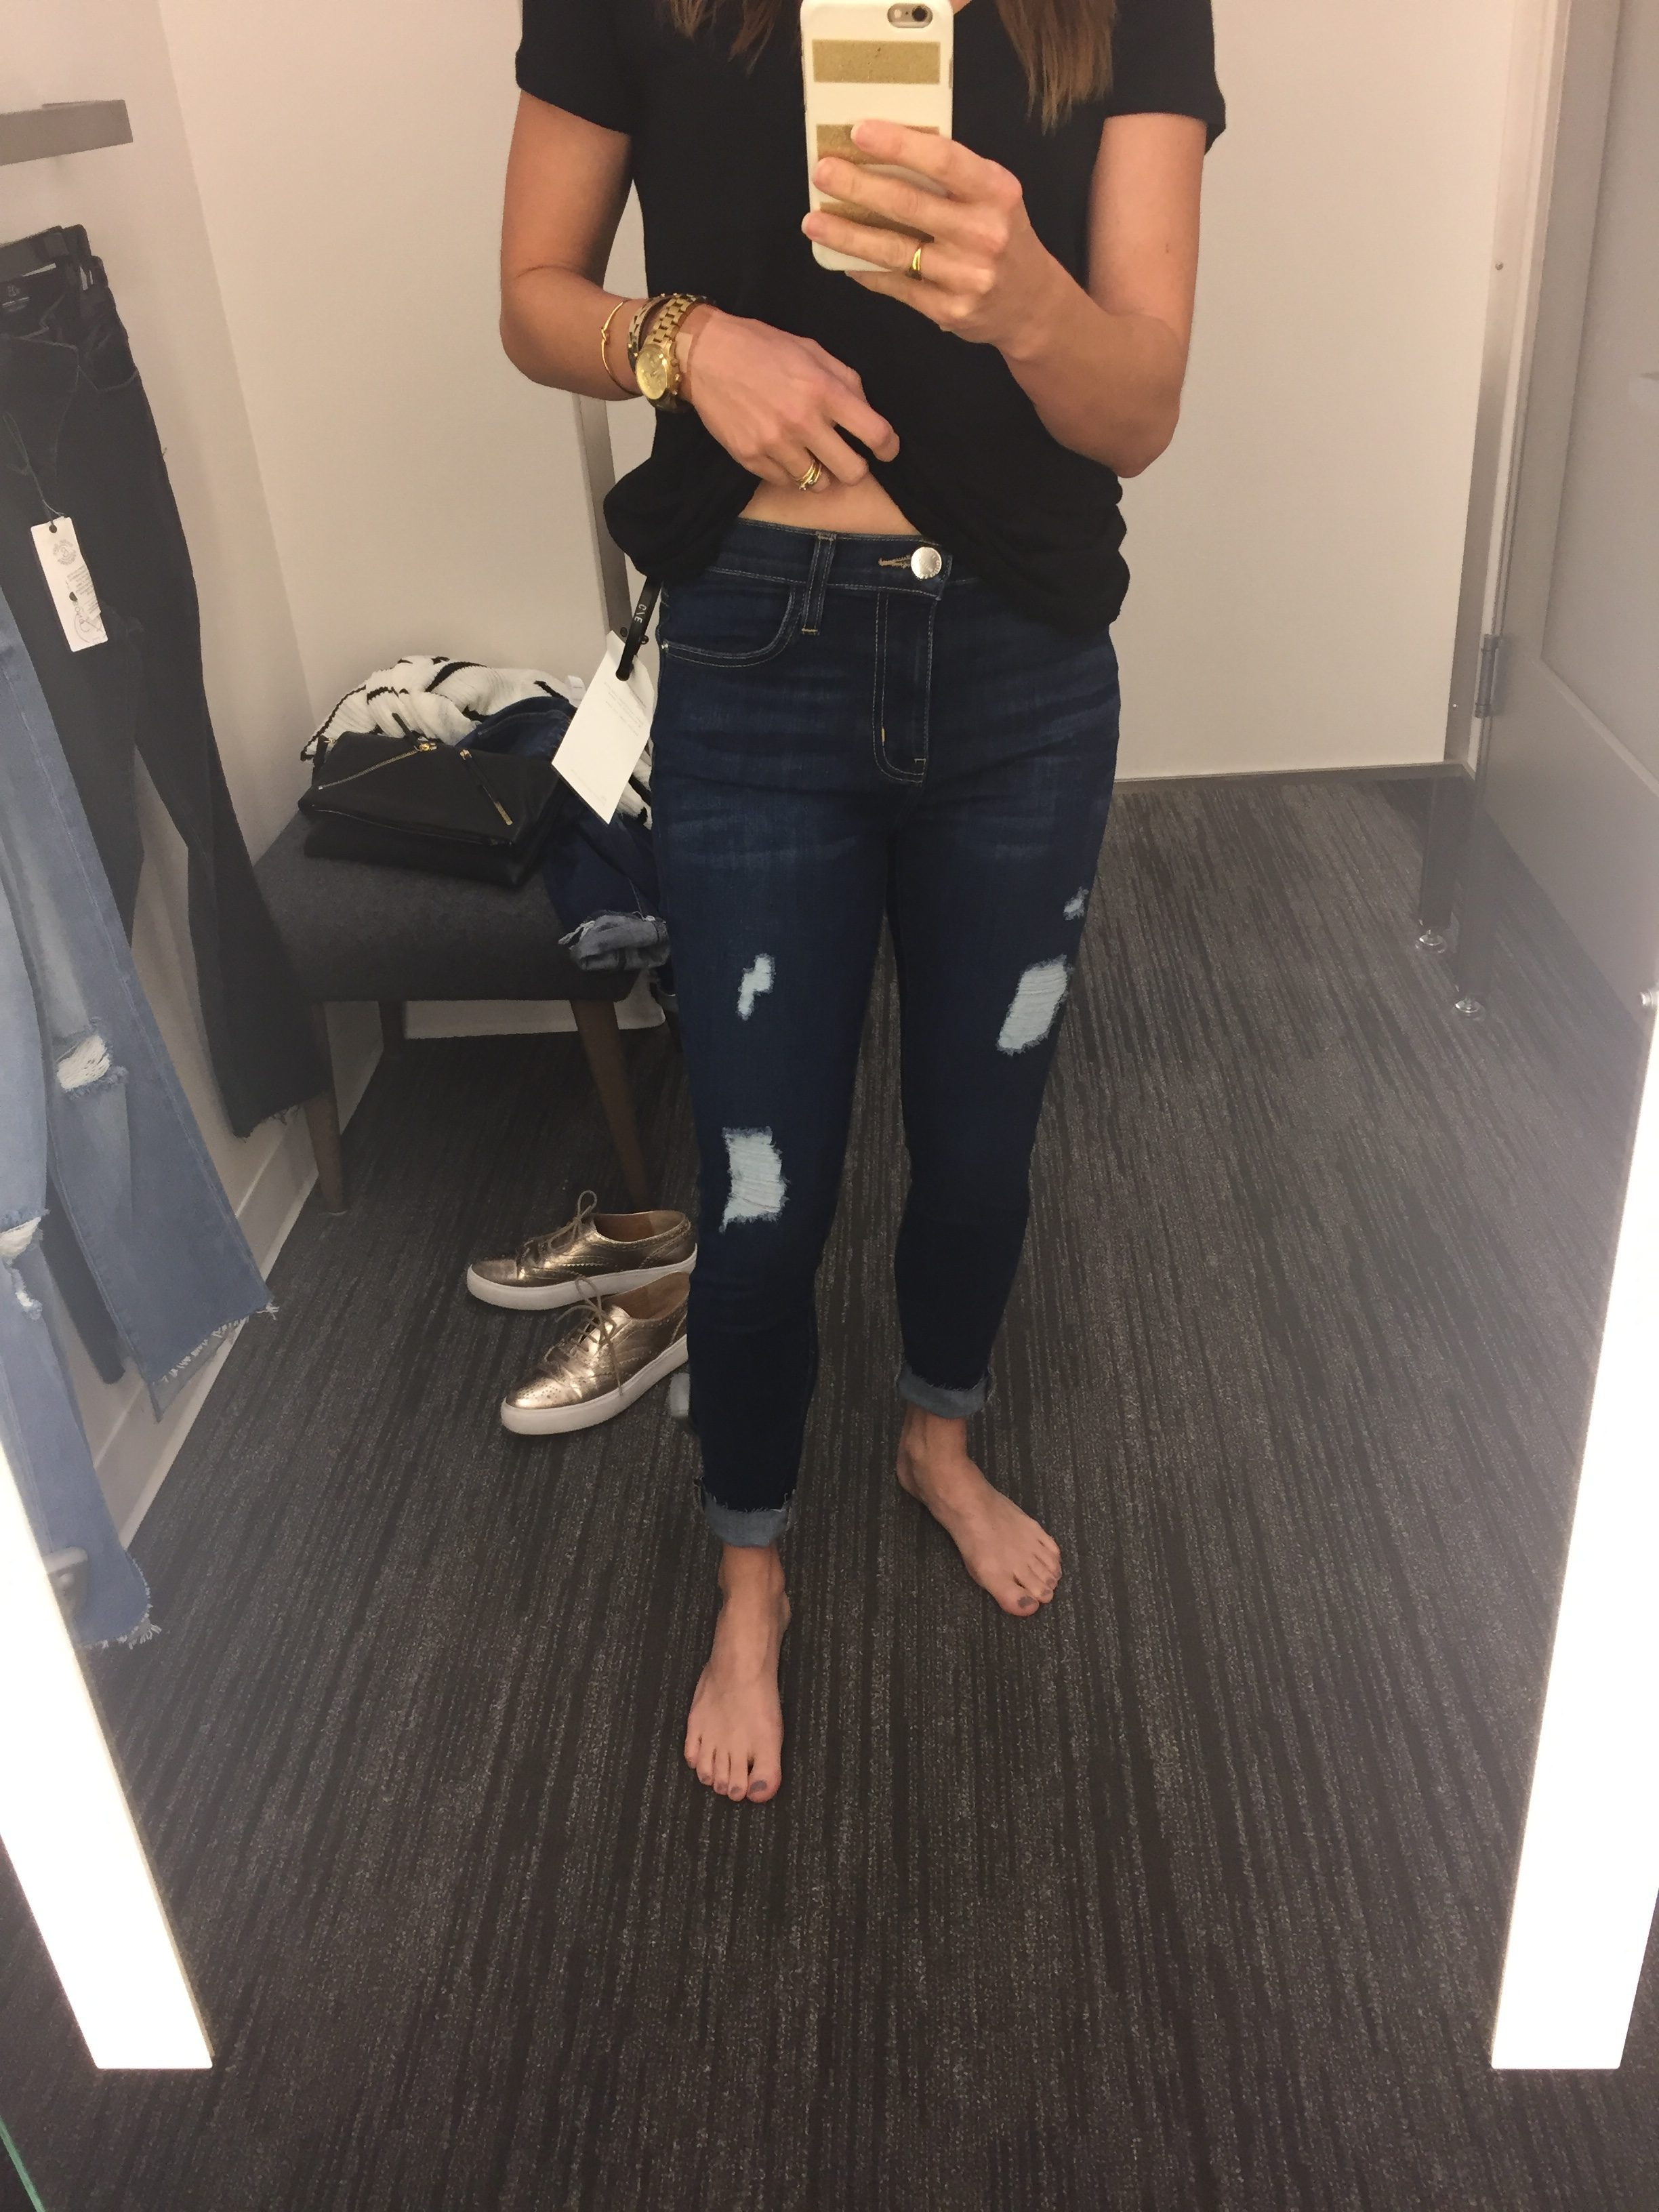 jean shopping, denim, skinny jeans, designer denim, everyday style, shopping, tips for buying jeans, my style, method39, find your fit, current elliott, frame, seven for all mankind, rag and bone